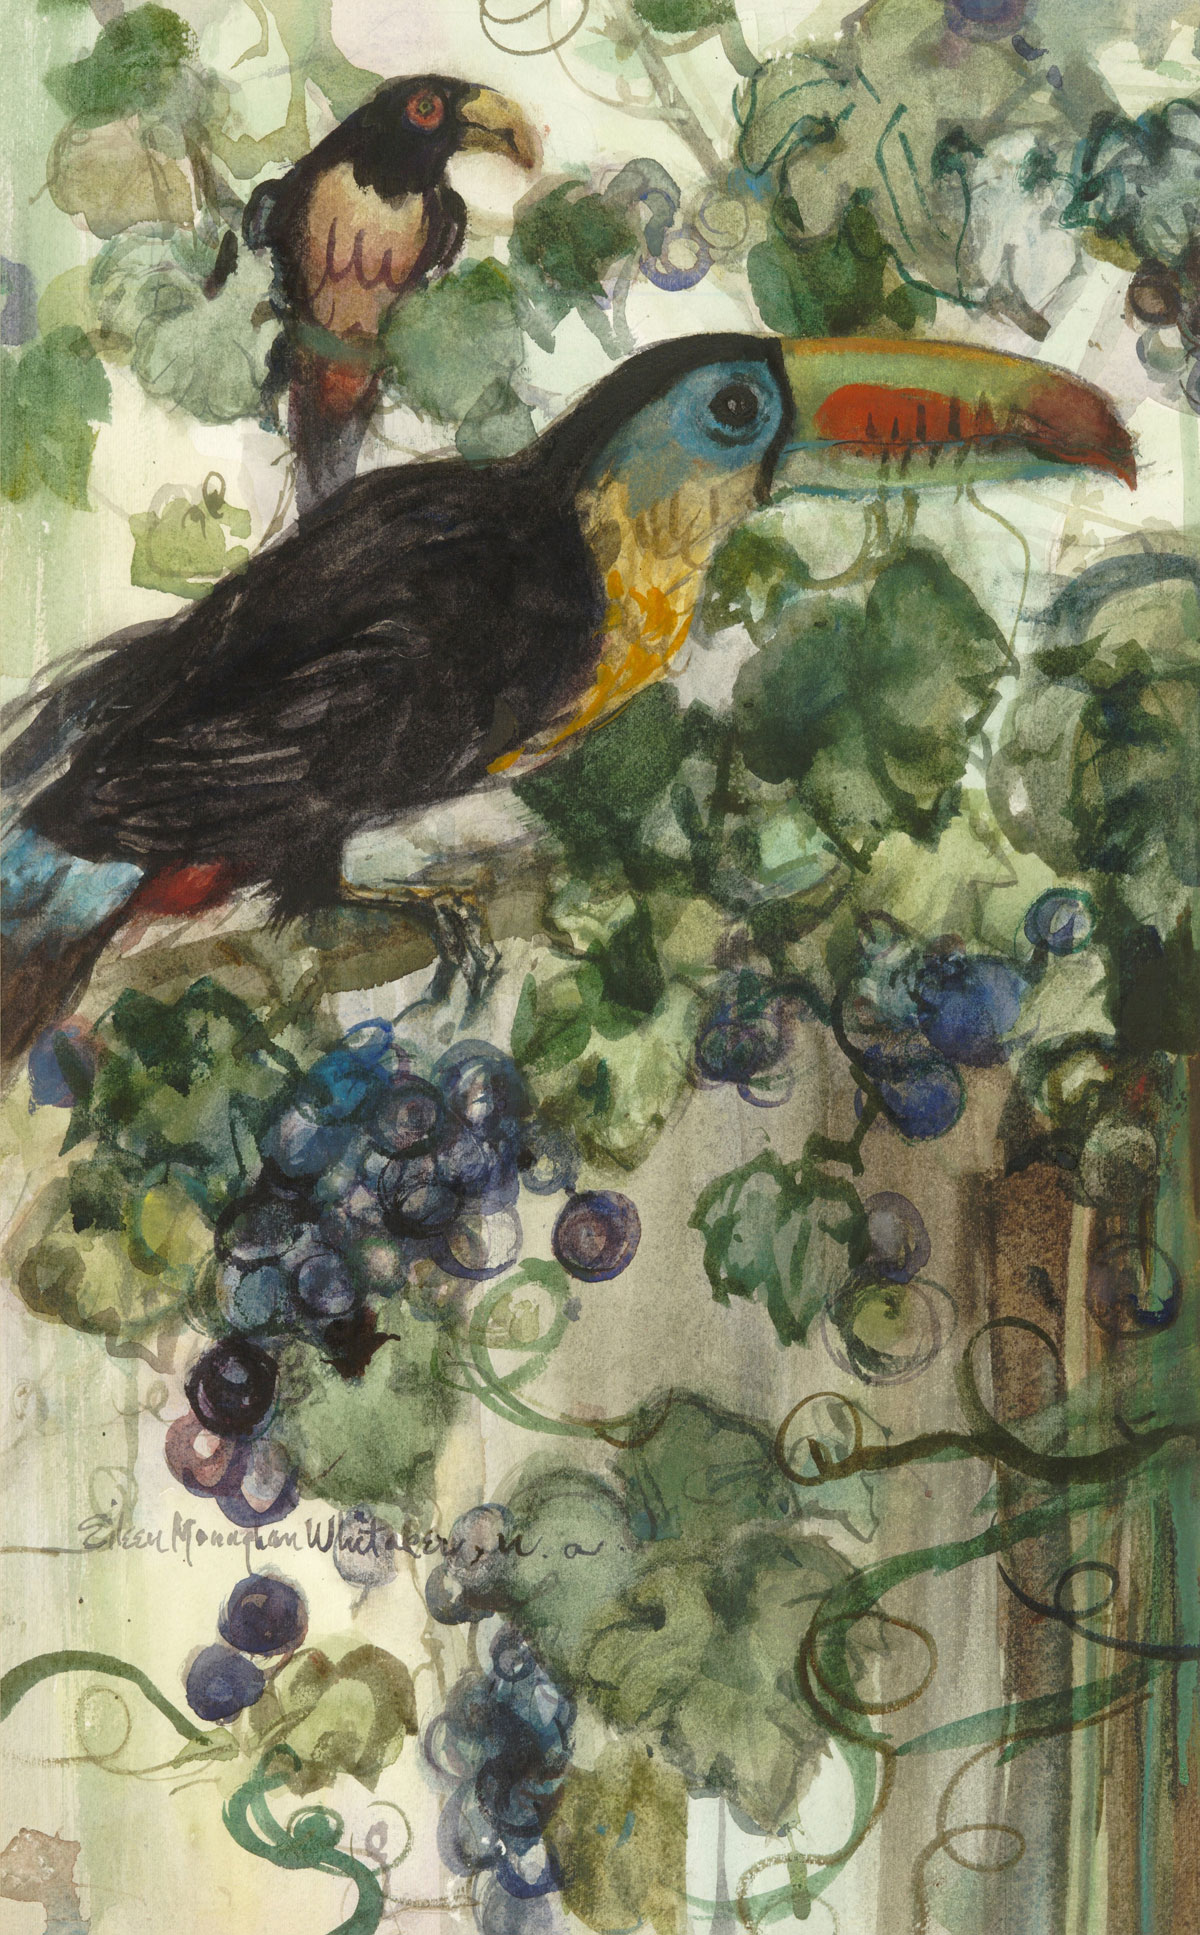 """Toucan in the Grapevines"" 1982 © Eileen Monaghan Whitaker N.A.  14x22 inches Watercolor"